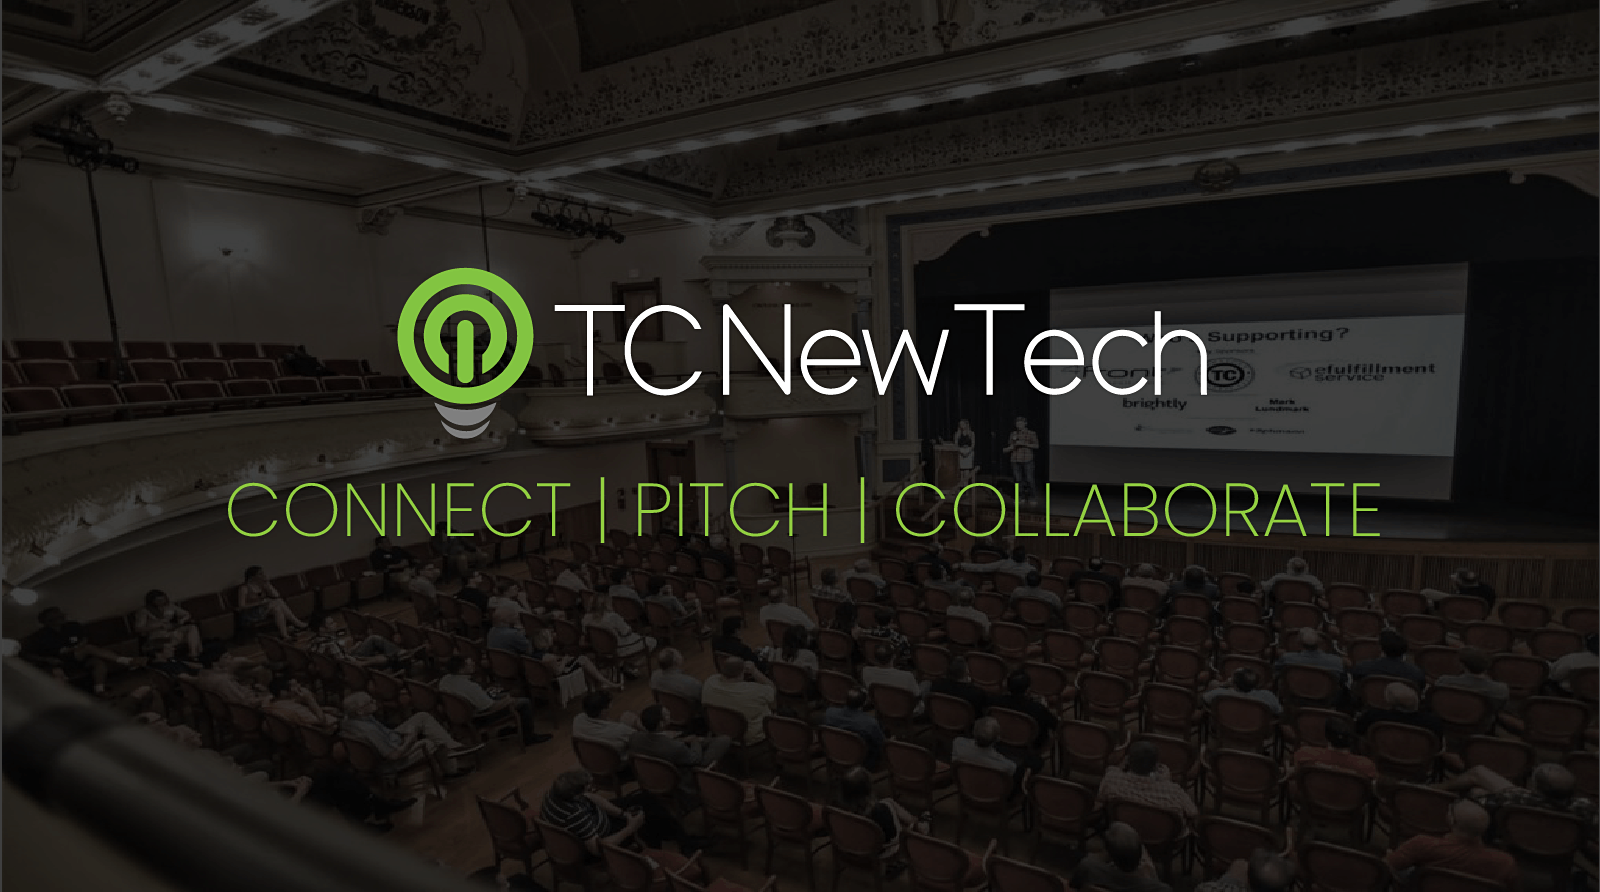 Connect, Pitch, and Collaborate at TCNewTech